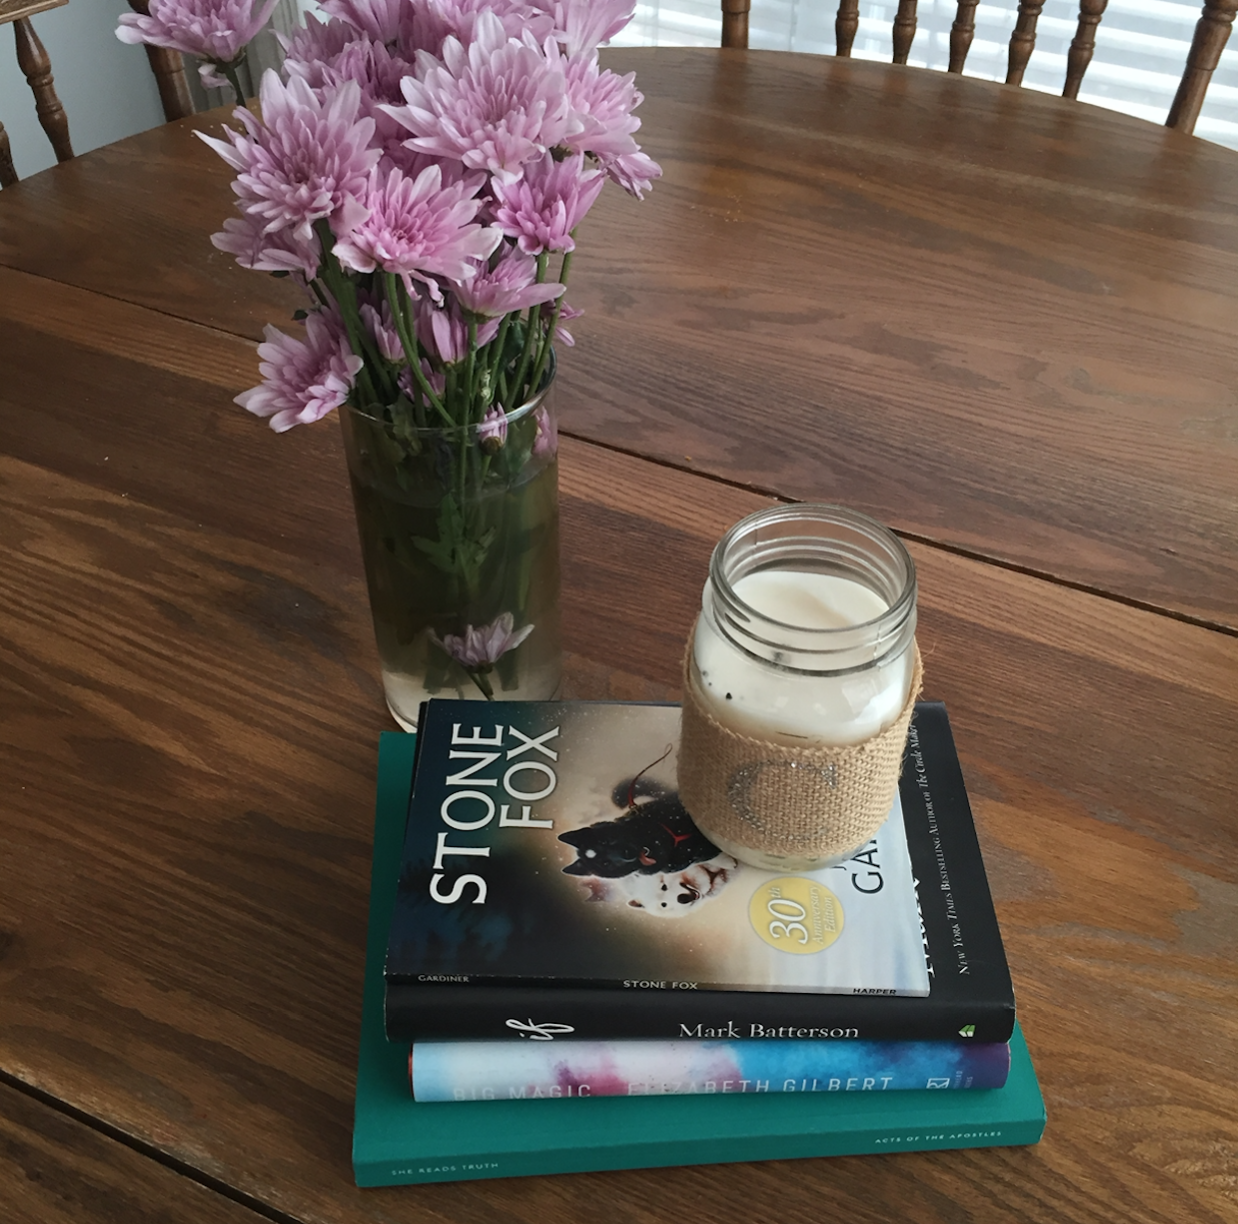 3 Books We Read This Week + a movie we watched